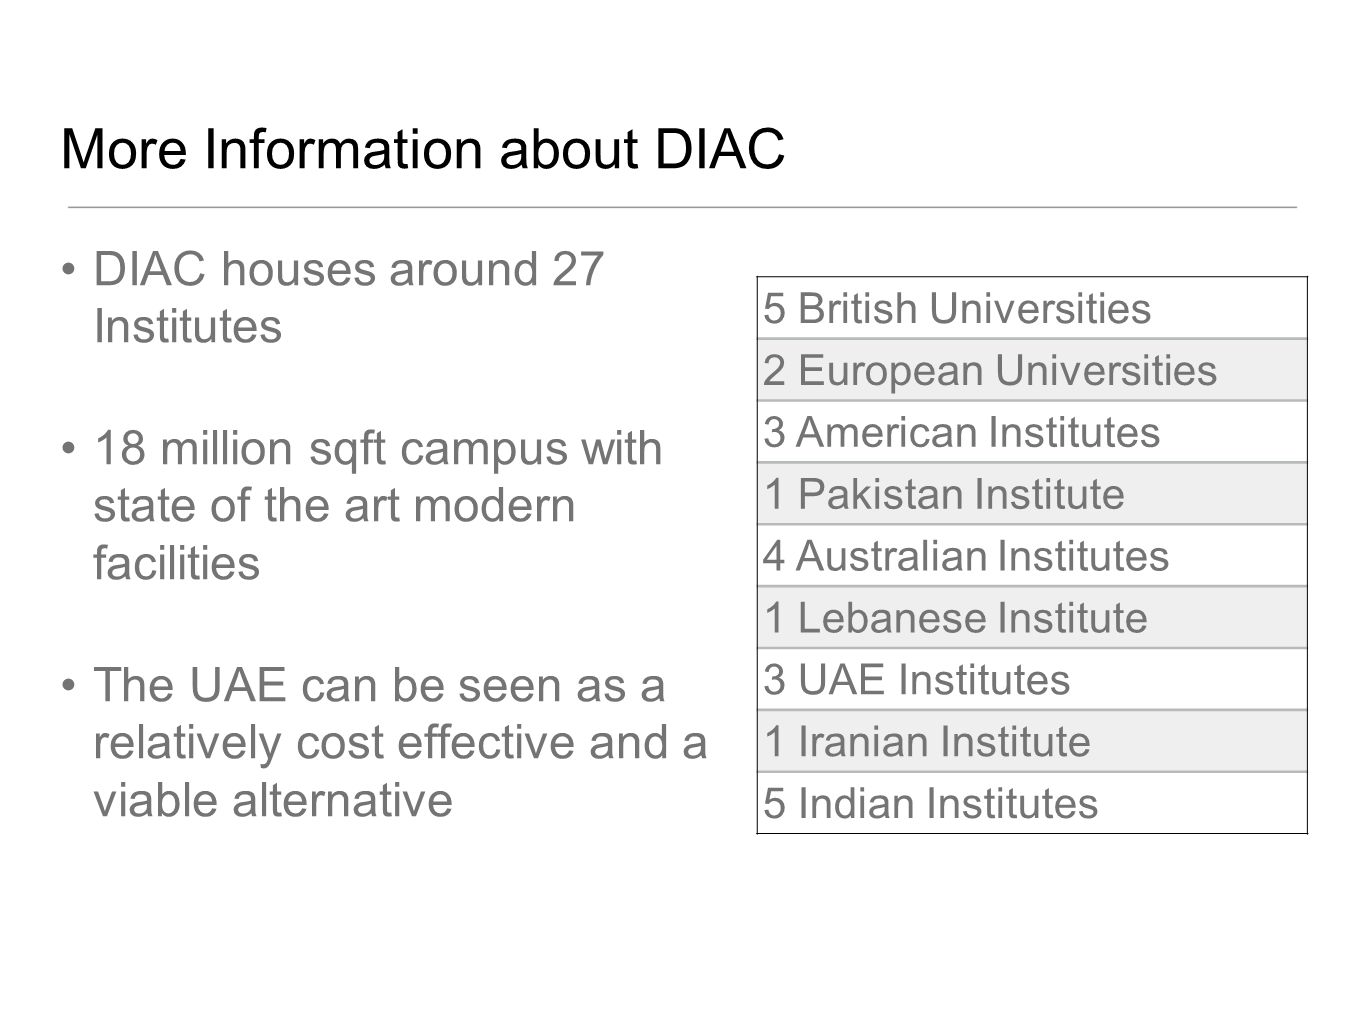 More Information about DIAC DIAC houses around 27 Institutes 18 million sqft campus with state of the art modern facilities The UAE can be seen as a relatively cost effective and a viable alternative 5 British Universities 2 European Universities 3 American Institutes 1 Pakistan Institute 4 Australian Institutes 1 Lebanese Institute 3 UAE Institutes 1 Iranian Institute 5 Indian Institutes